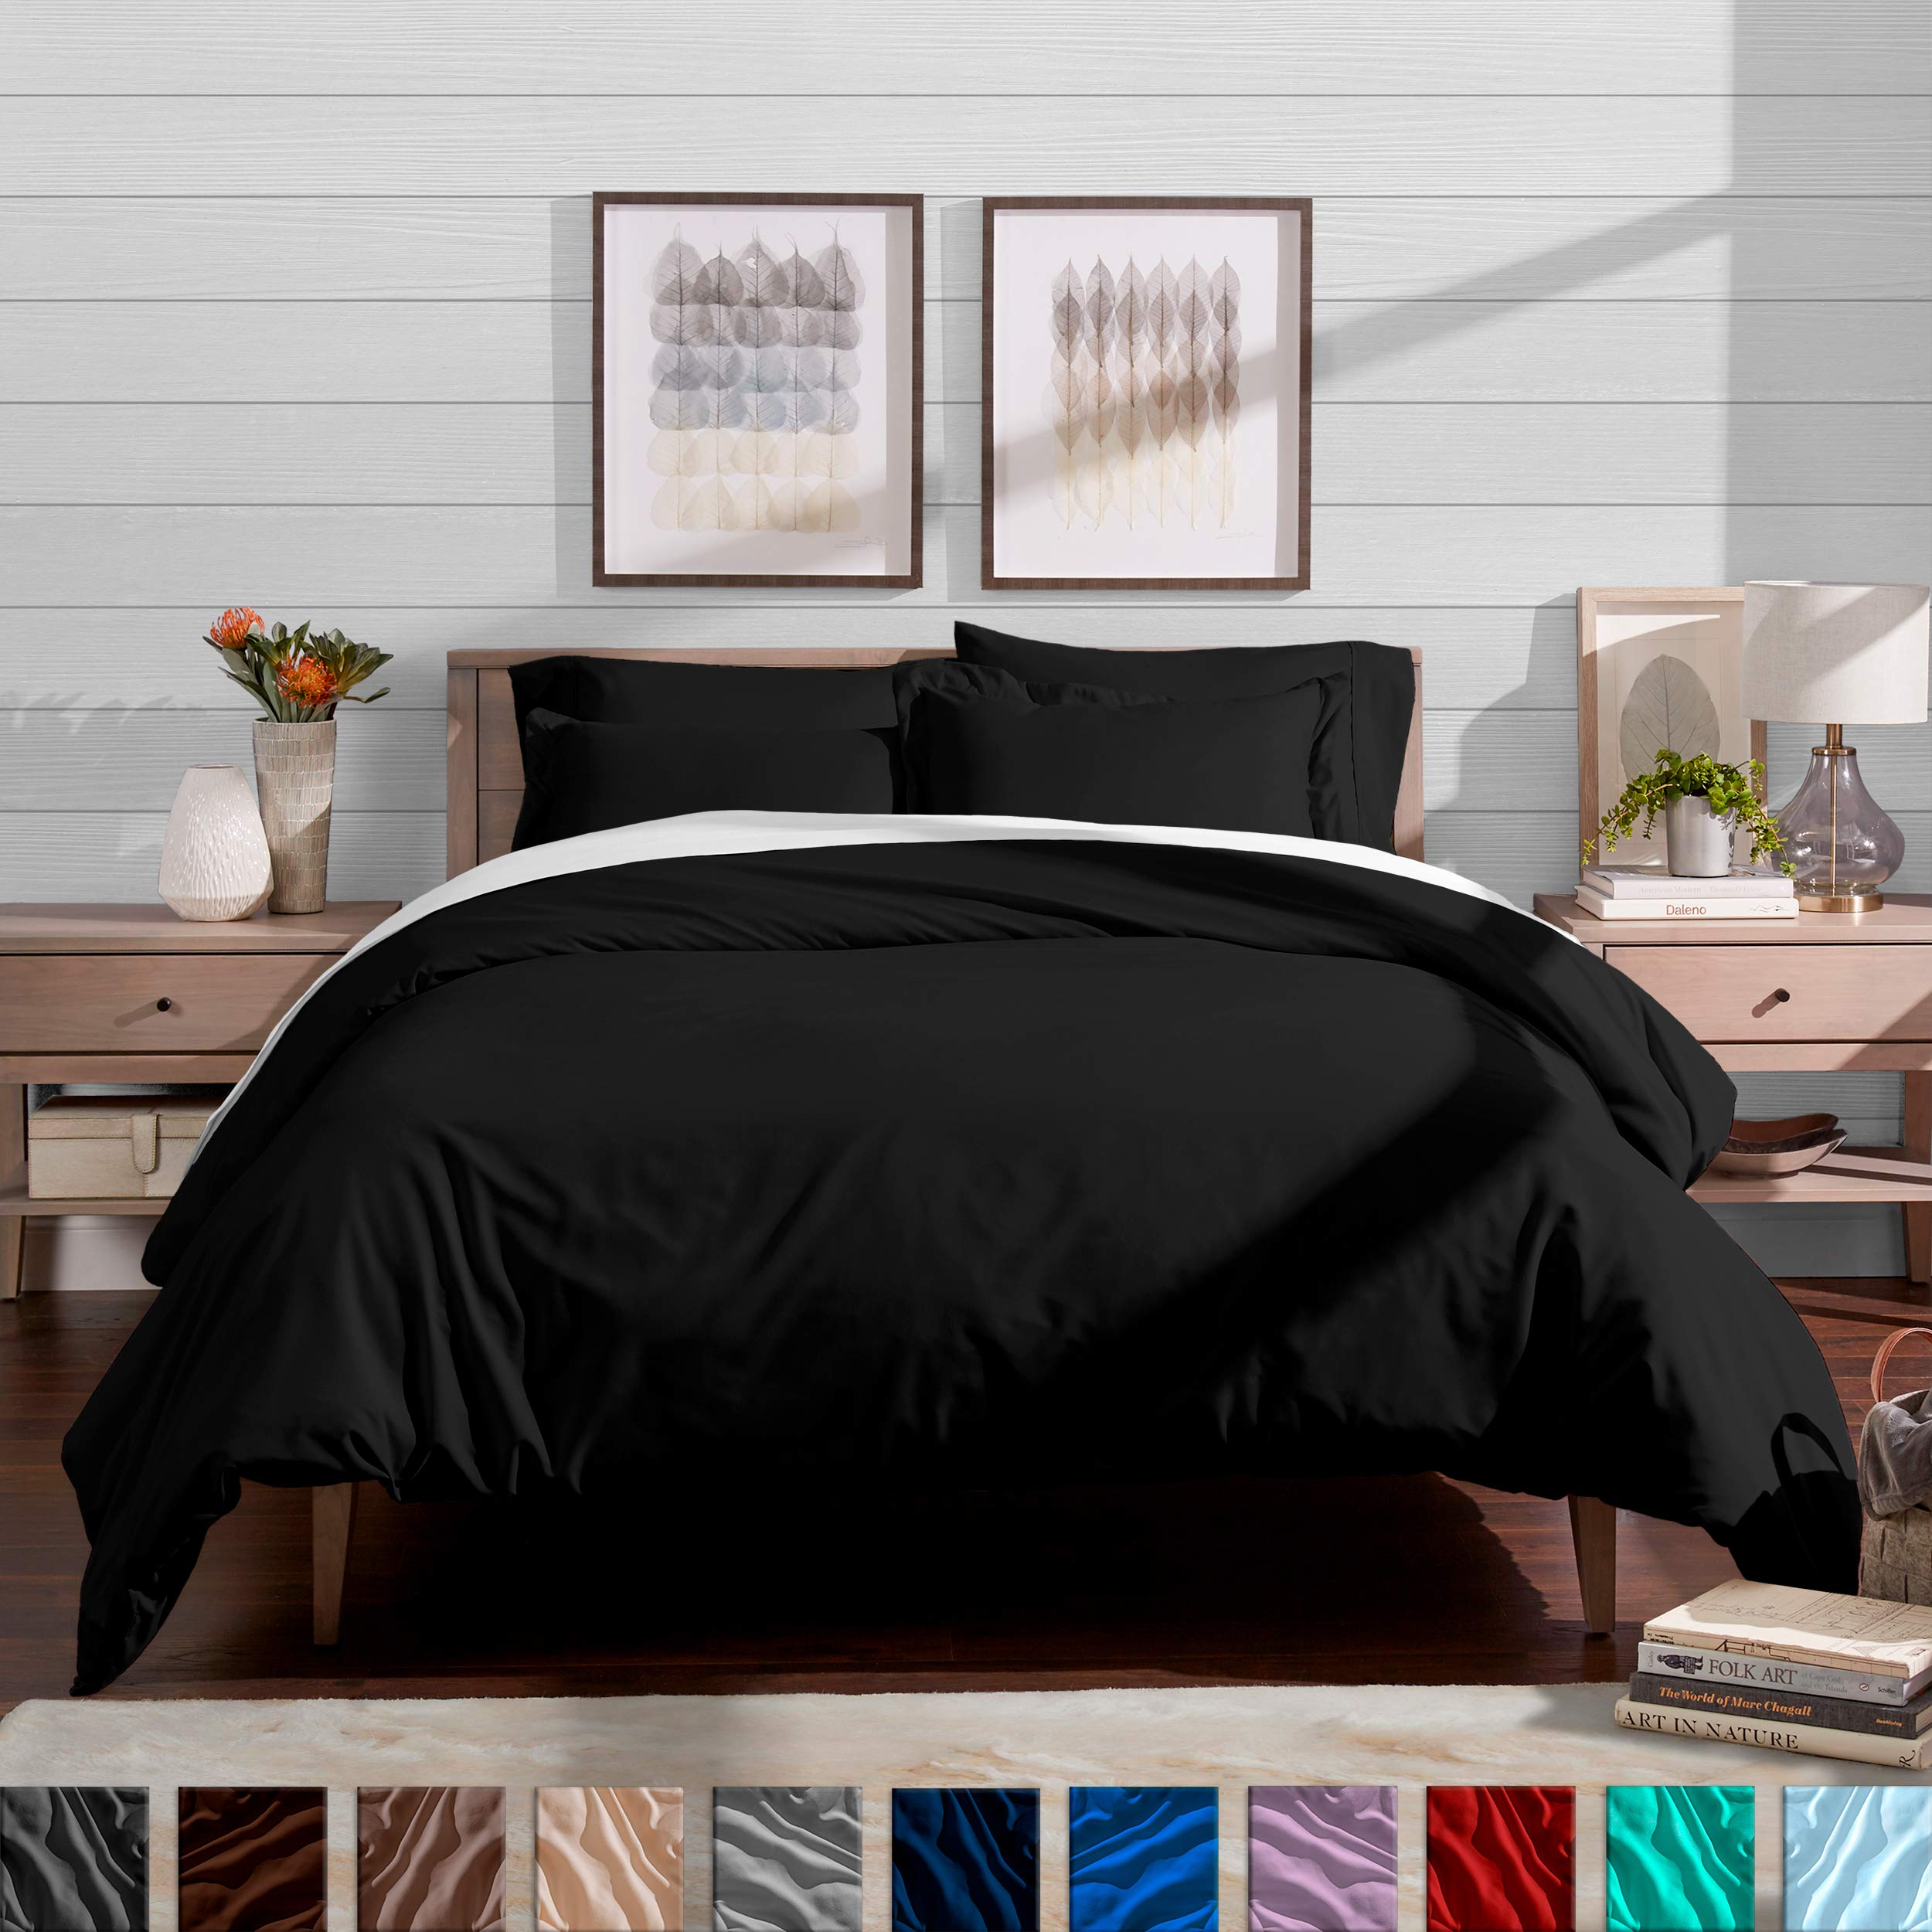 Bare Home Luxury 3 Piece Duvet Cover and Sham Set - Full/Queen - Premium 1800 Ultra-Soft Brushed Microfiber - Hypoallergenic, Easy Care, Wrinkle Resistant (Full/Queen, Black) by Bare Home (Image #1)